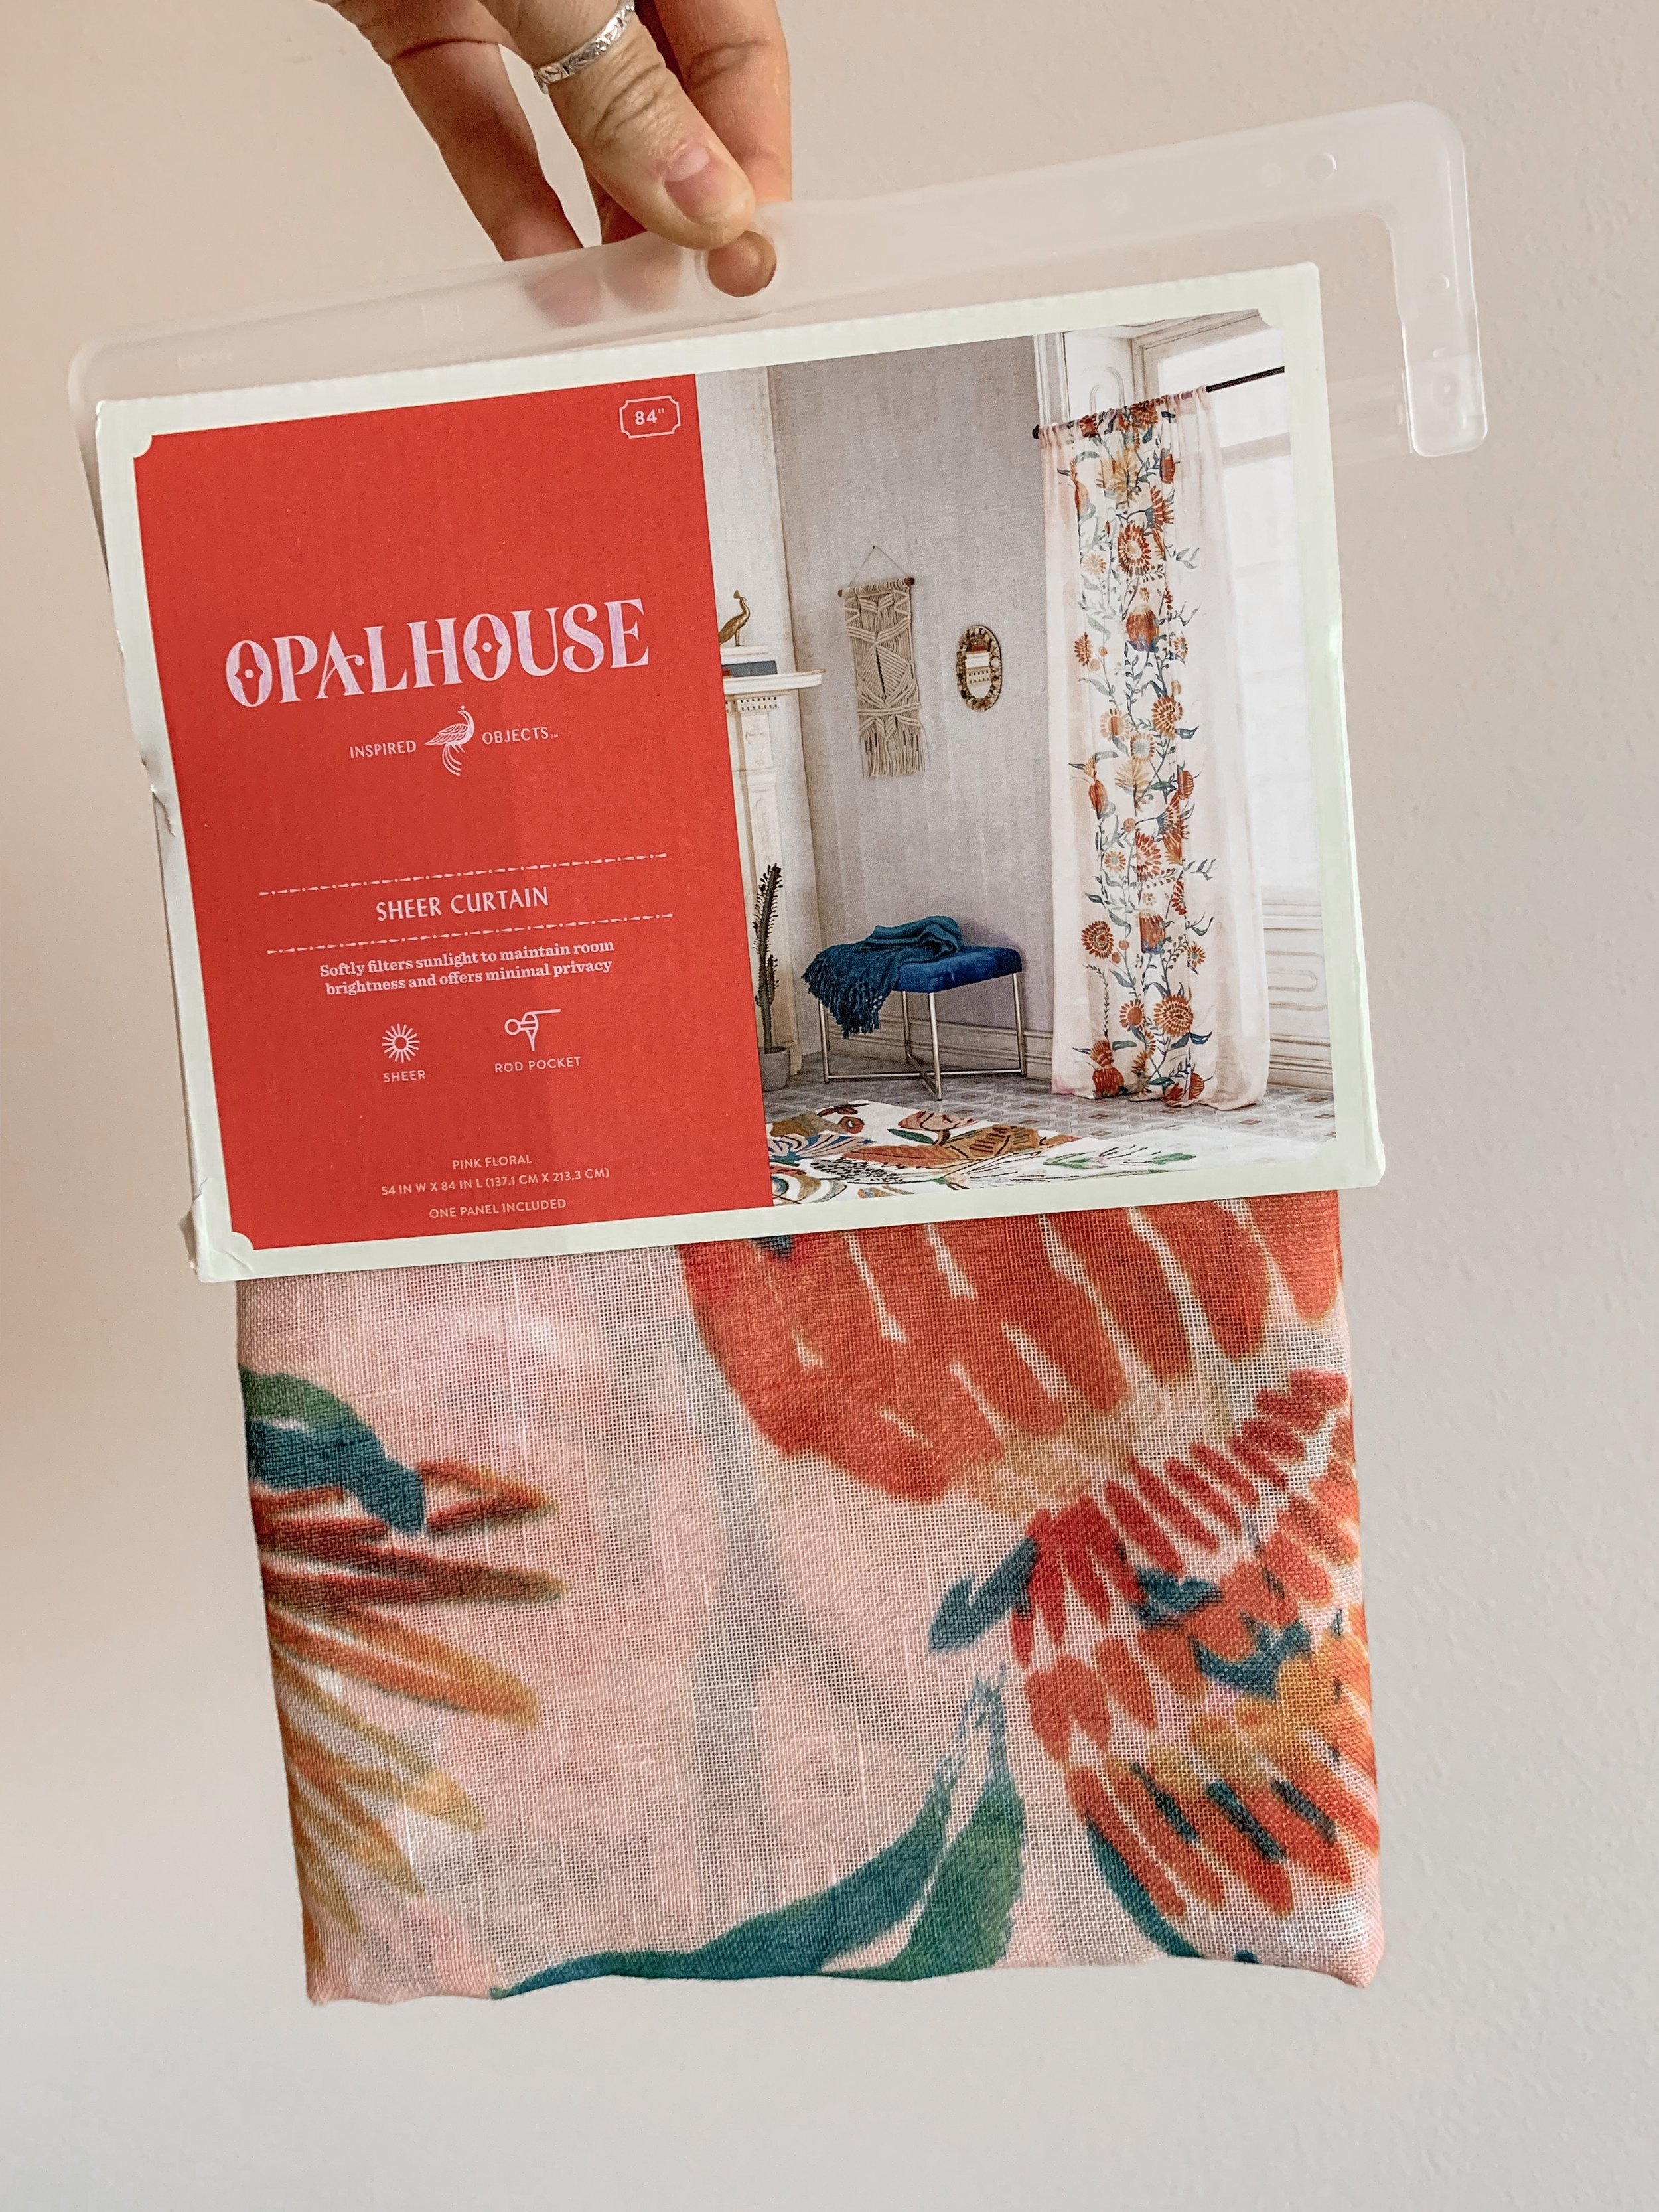 Bre Sheppard - Apartment Hack - Hanging Curtains Without Damaging Your Walls : Target Curtains.JPG